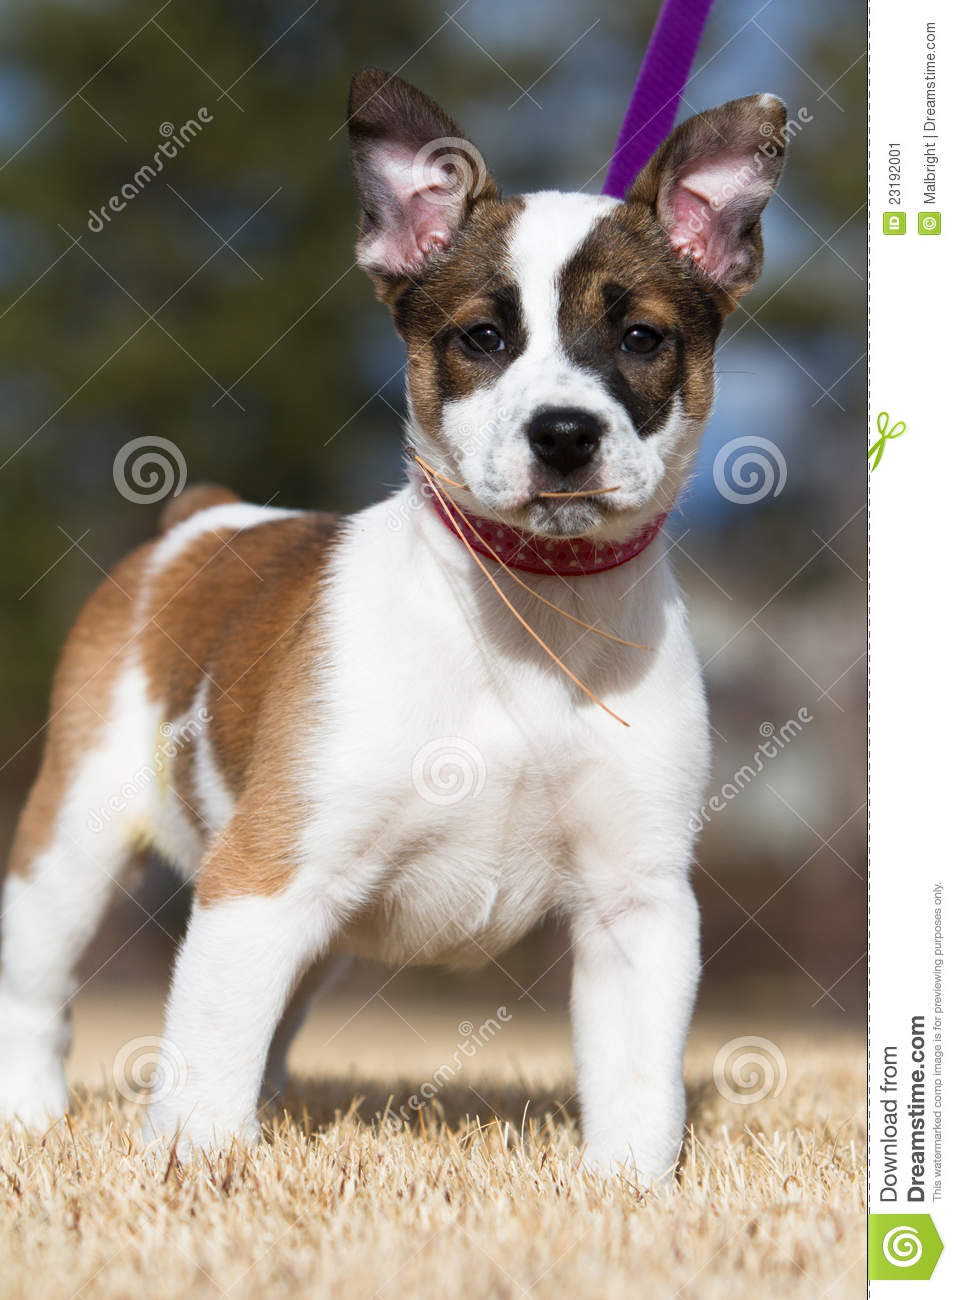 Cattle Dog / Toy Fox Terrier Puppy Stock Image - Image ...